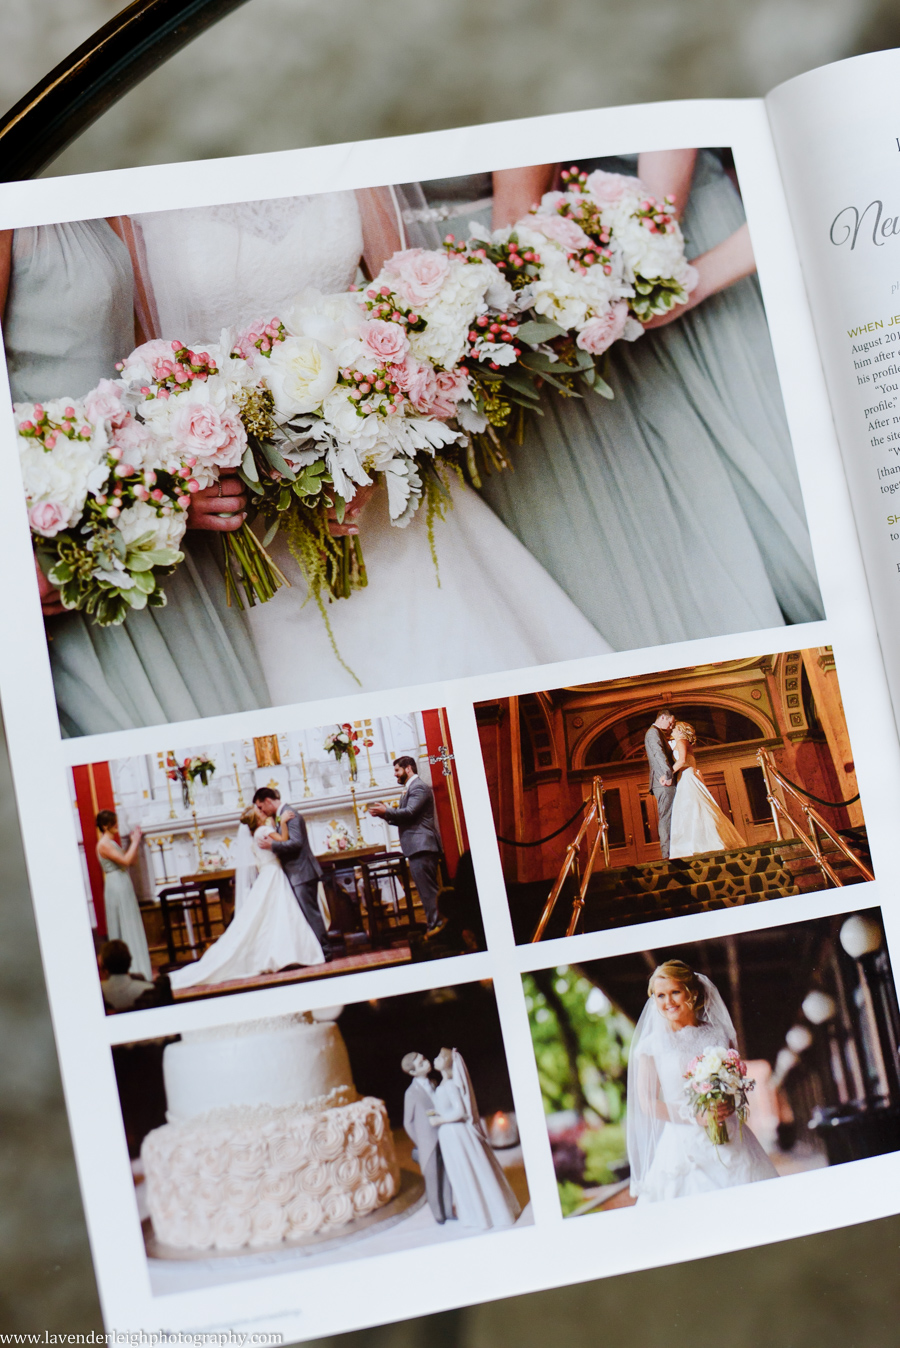 Pittsburgh Wedding Magazine, Lavender Leigh Photography, spring 2017 issue, pennsylvania